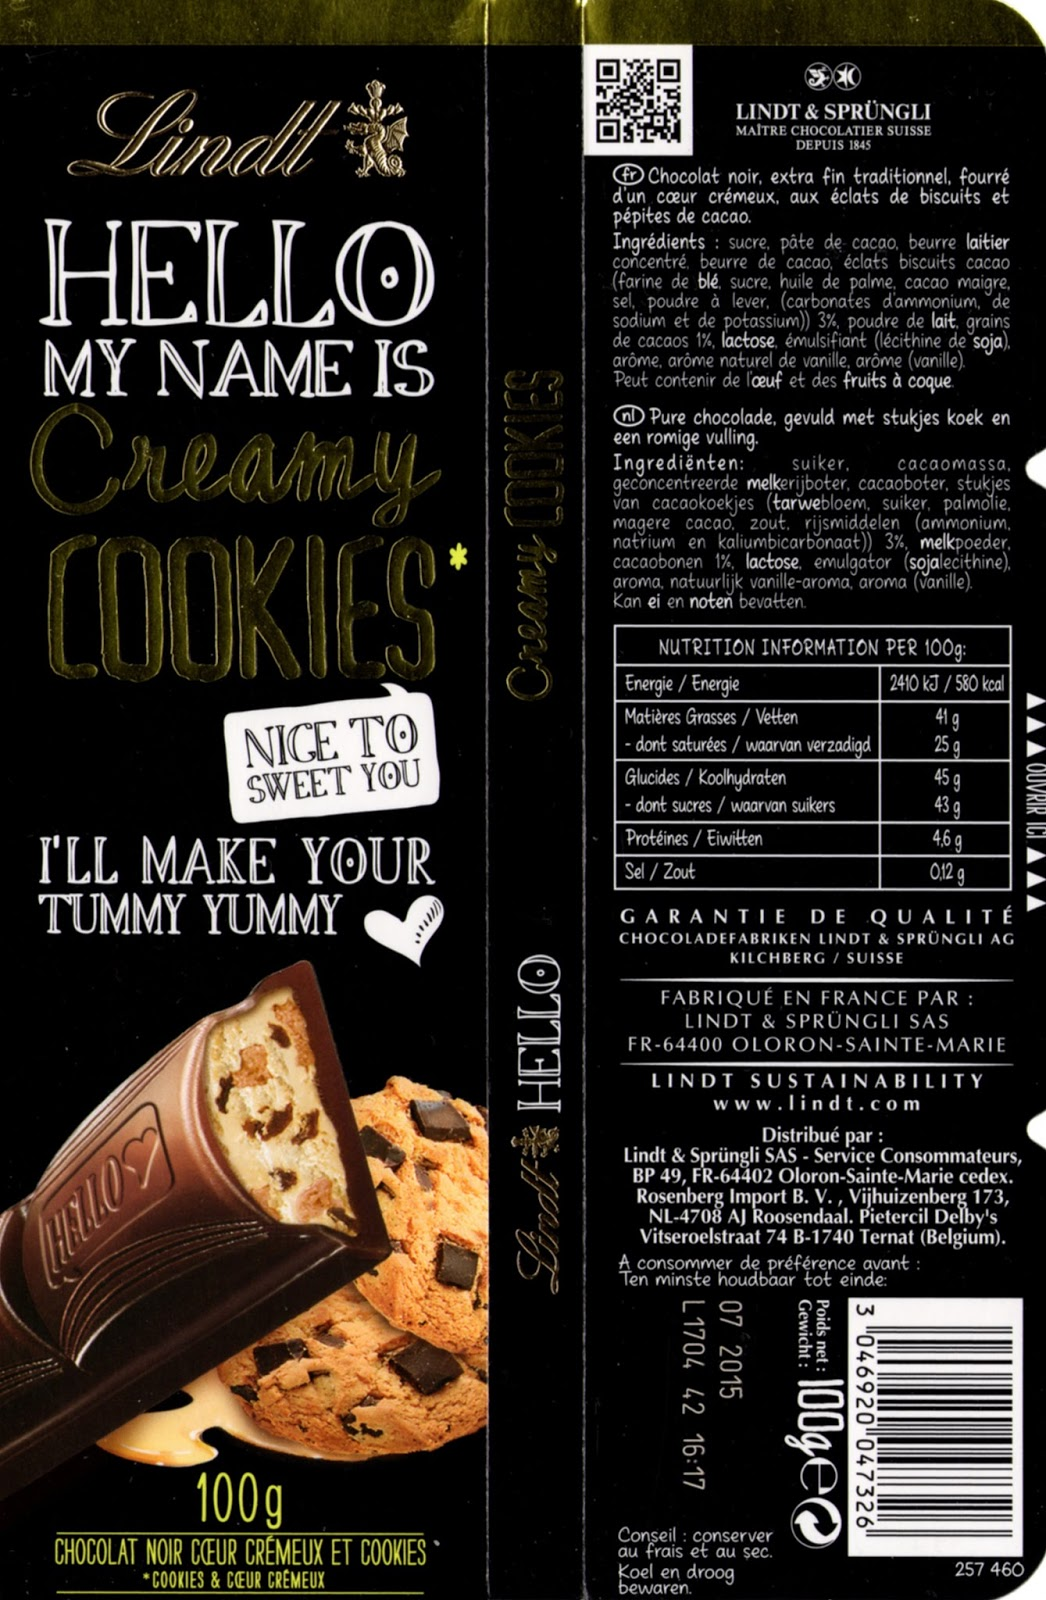 tablette de chocolat noir fourré lindt hello my name is creamy cookies